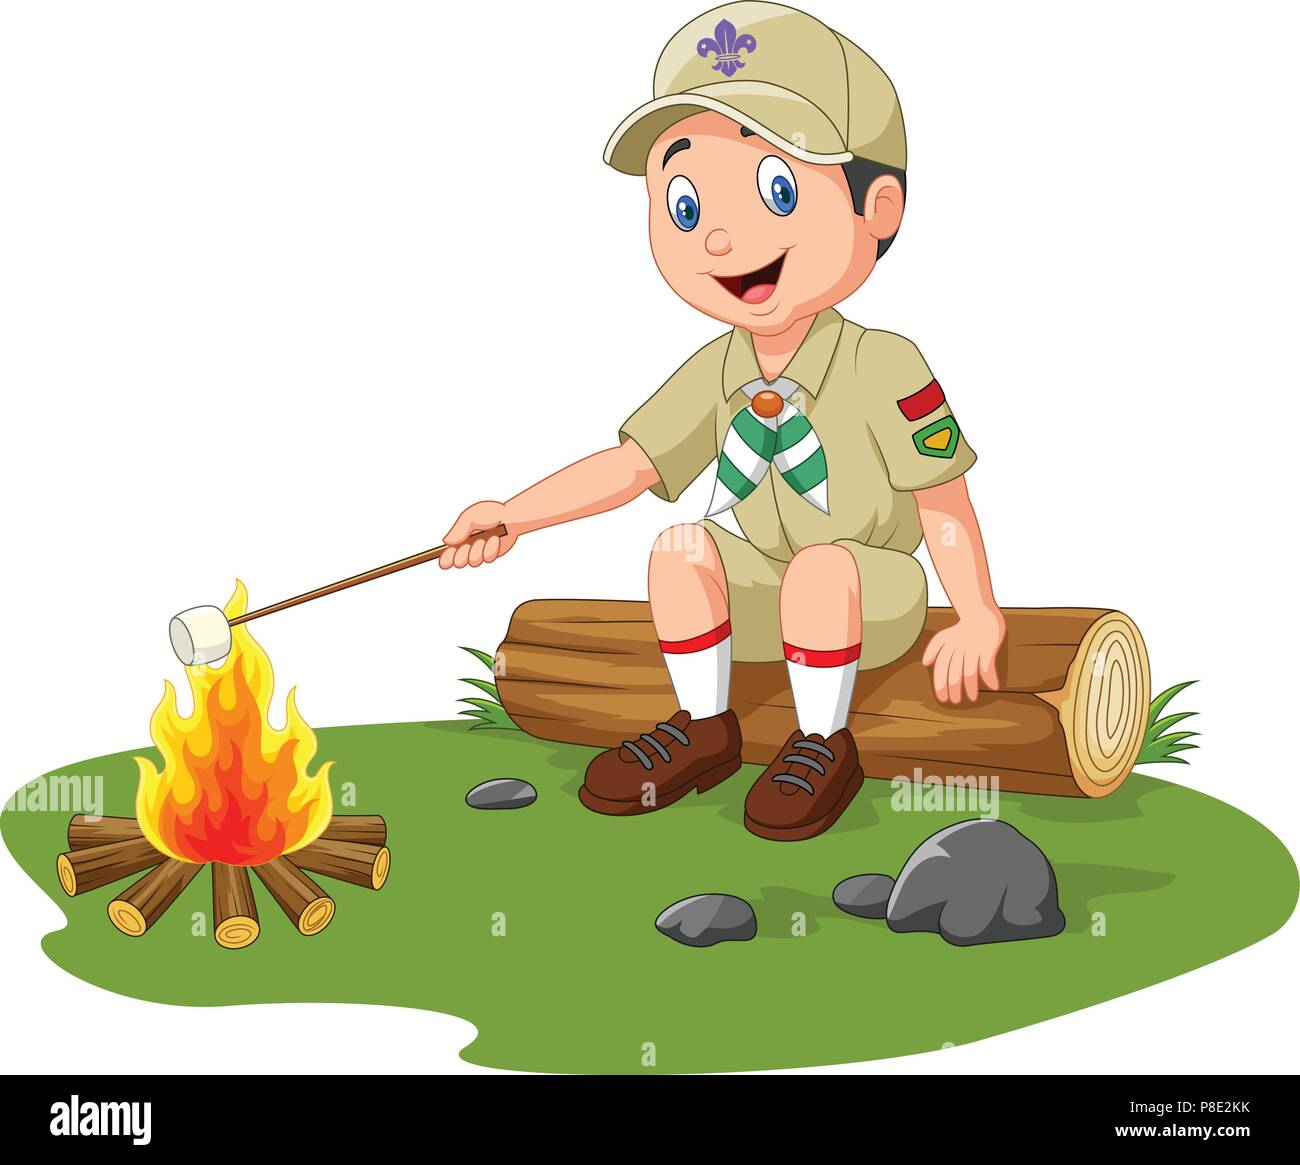 Cartoon scout roasting marshmallow - Stock Vector